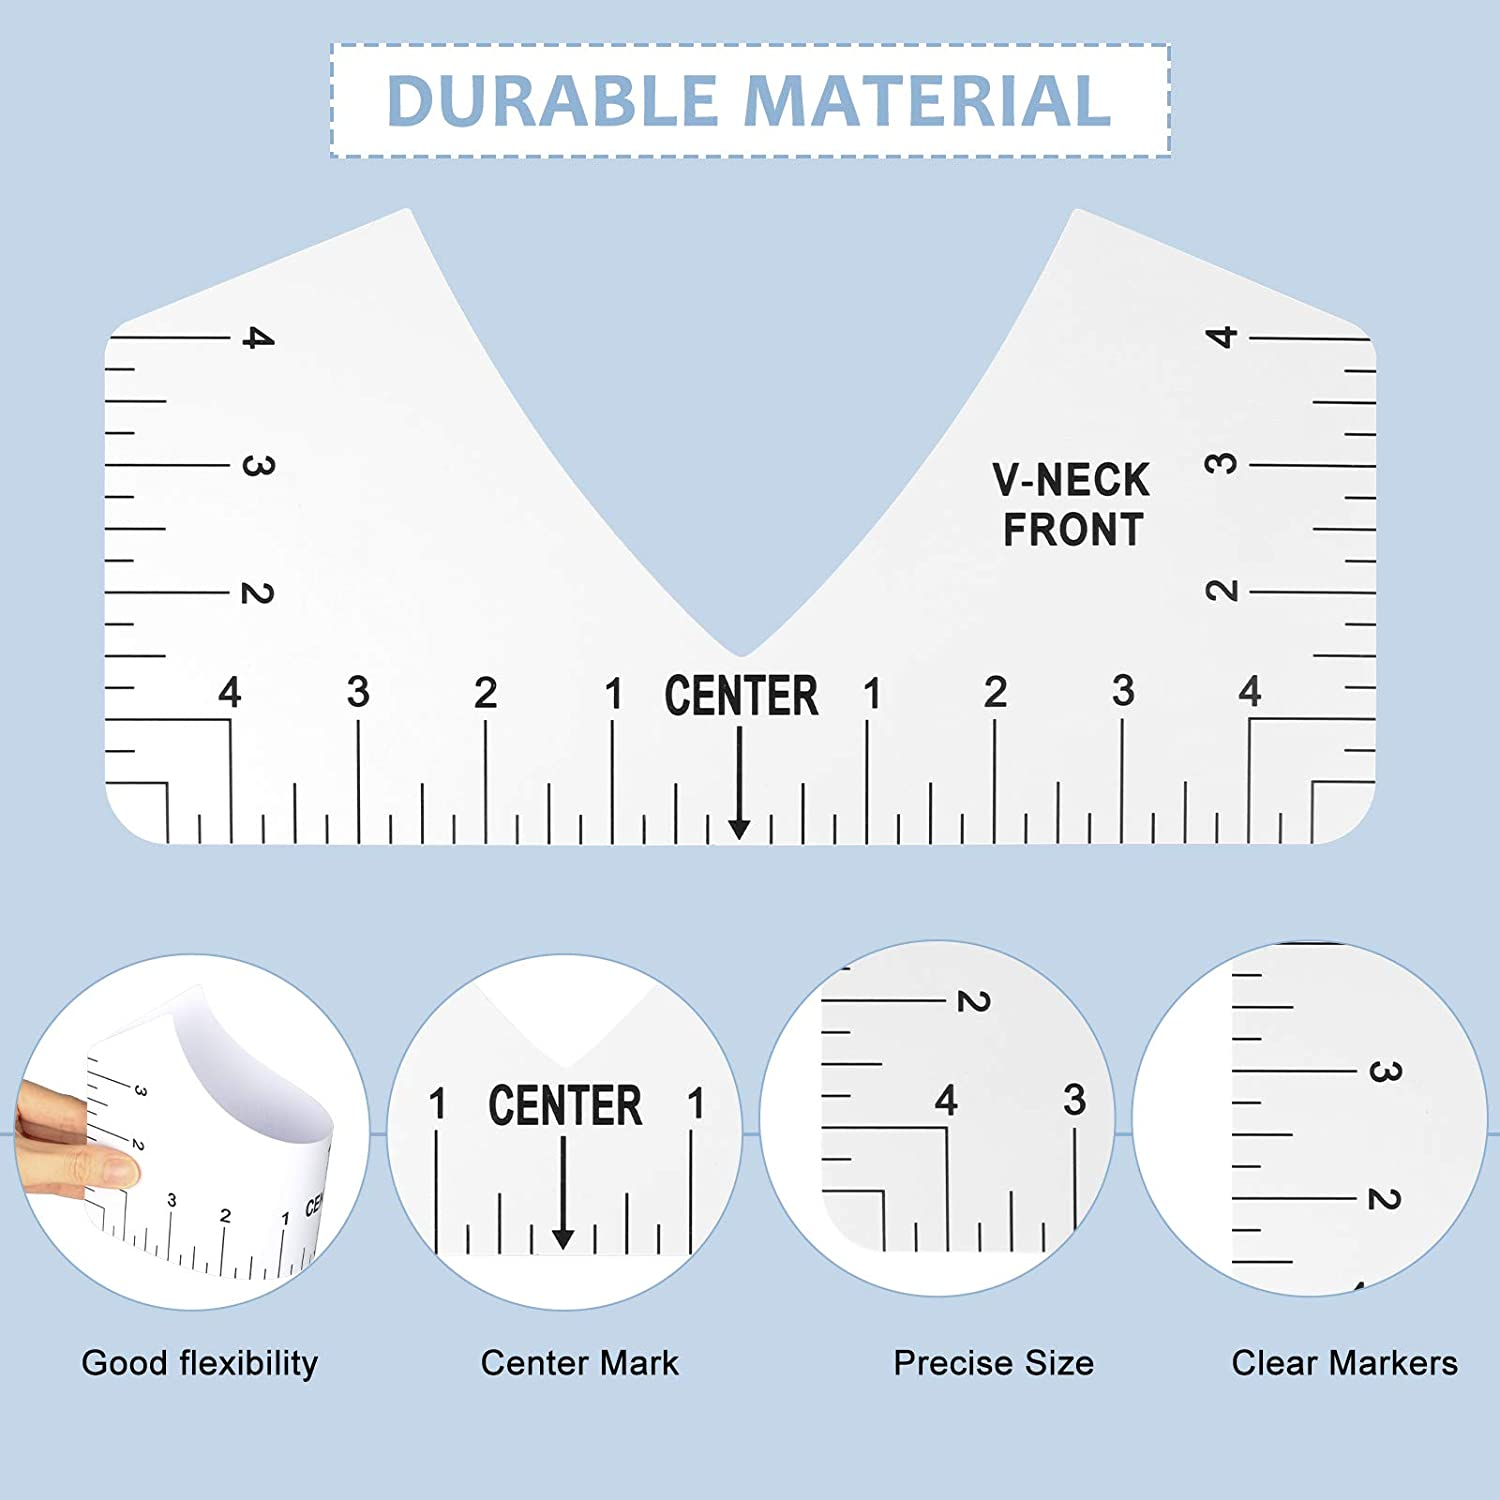 Vinyl Precise T-shirt Measurement Ruler with V Neck Round Neck Youth Child 4Pcs Sturdy Soft Ruler Guide for Adult T-shirt Alignment Ruler